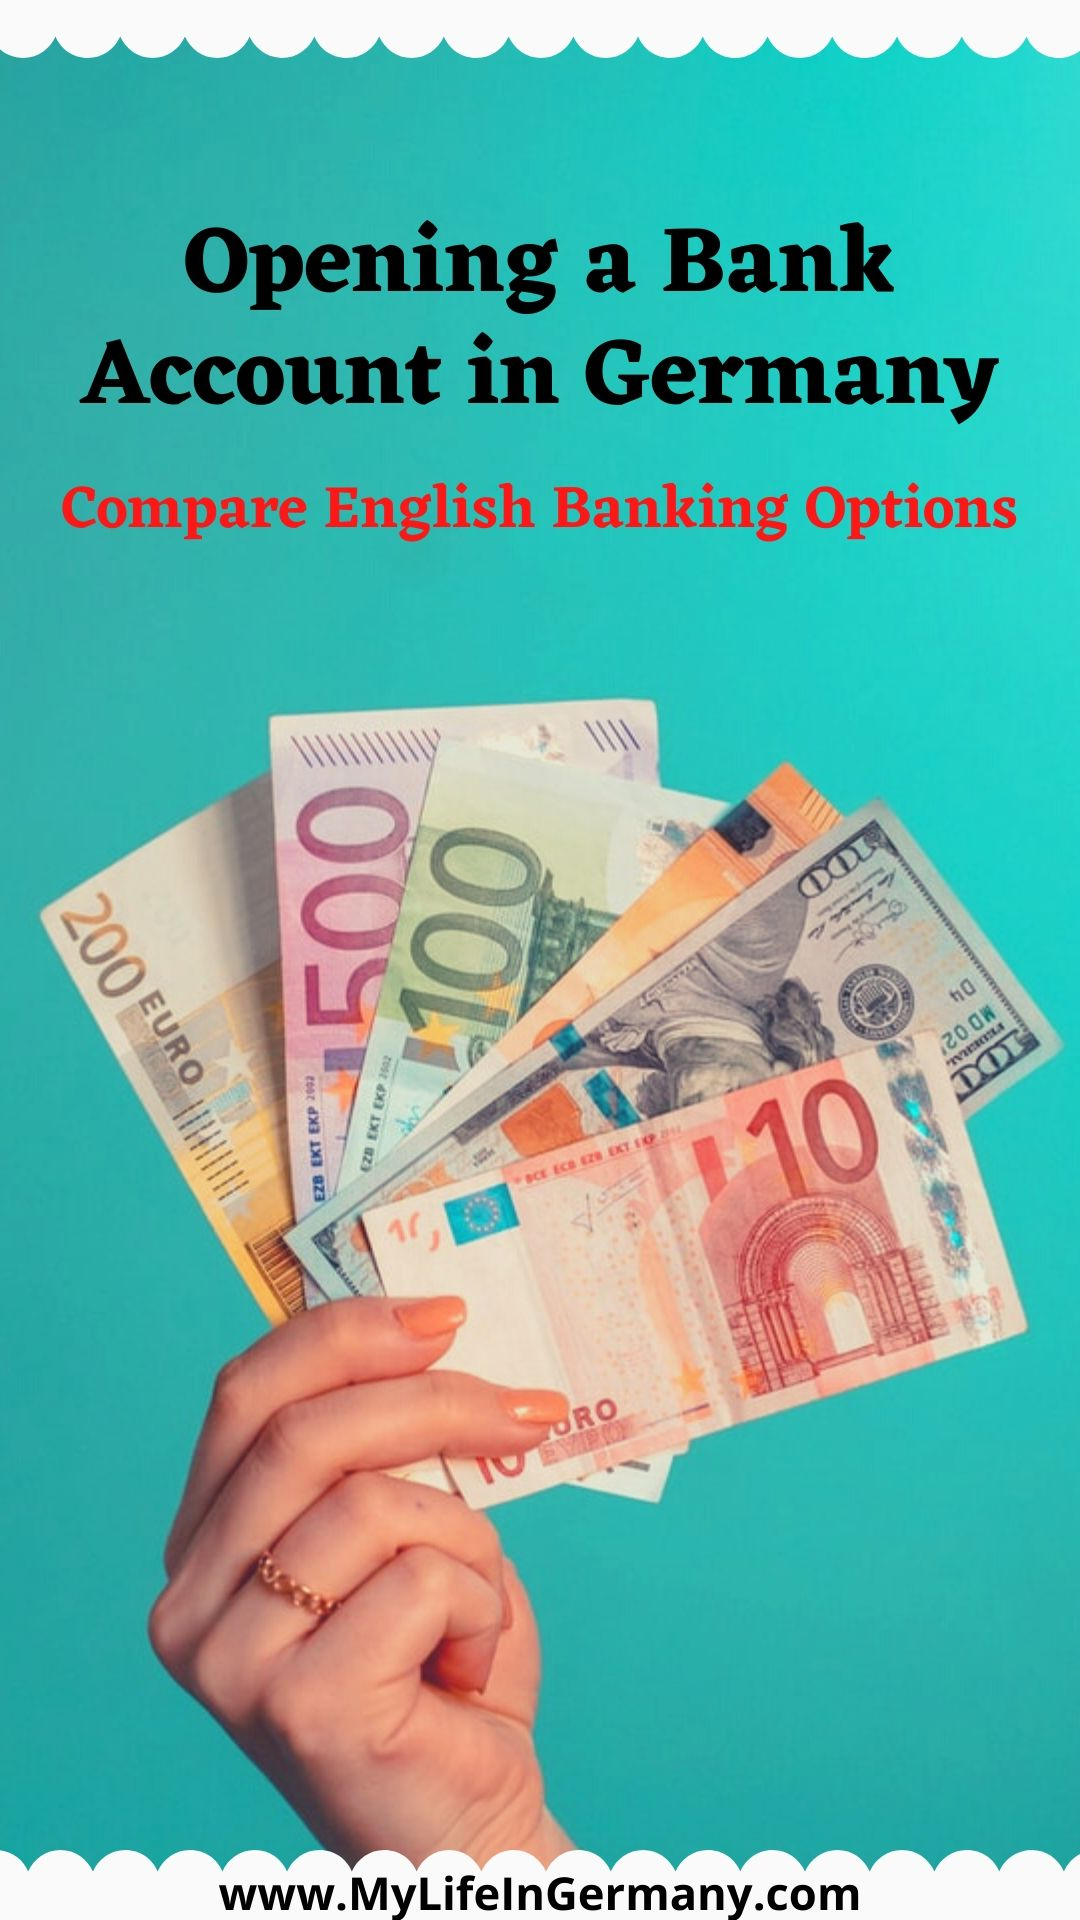 pinterest edited_how to open a bank account in Germany_compare english banking options_my life in germany_hkwomanabroad